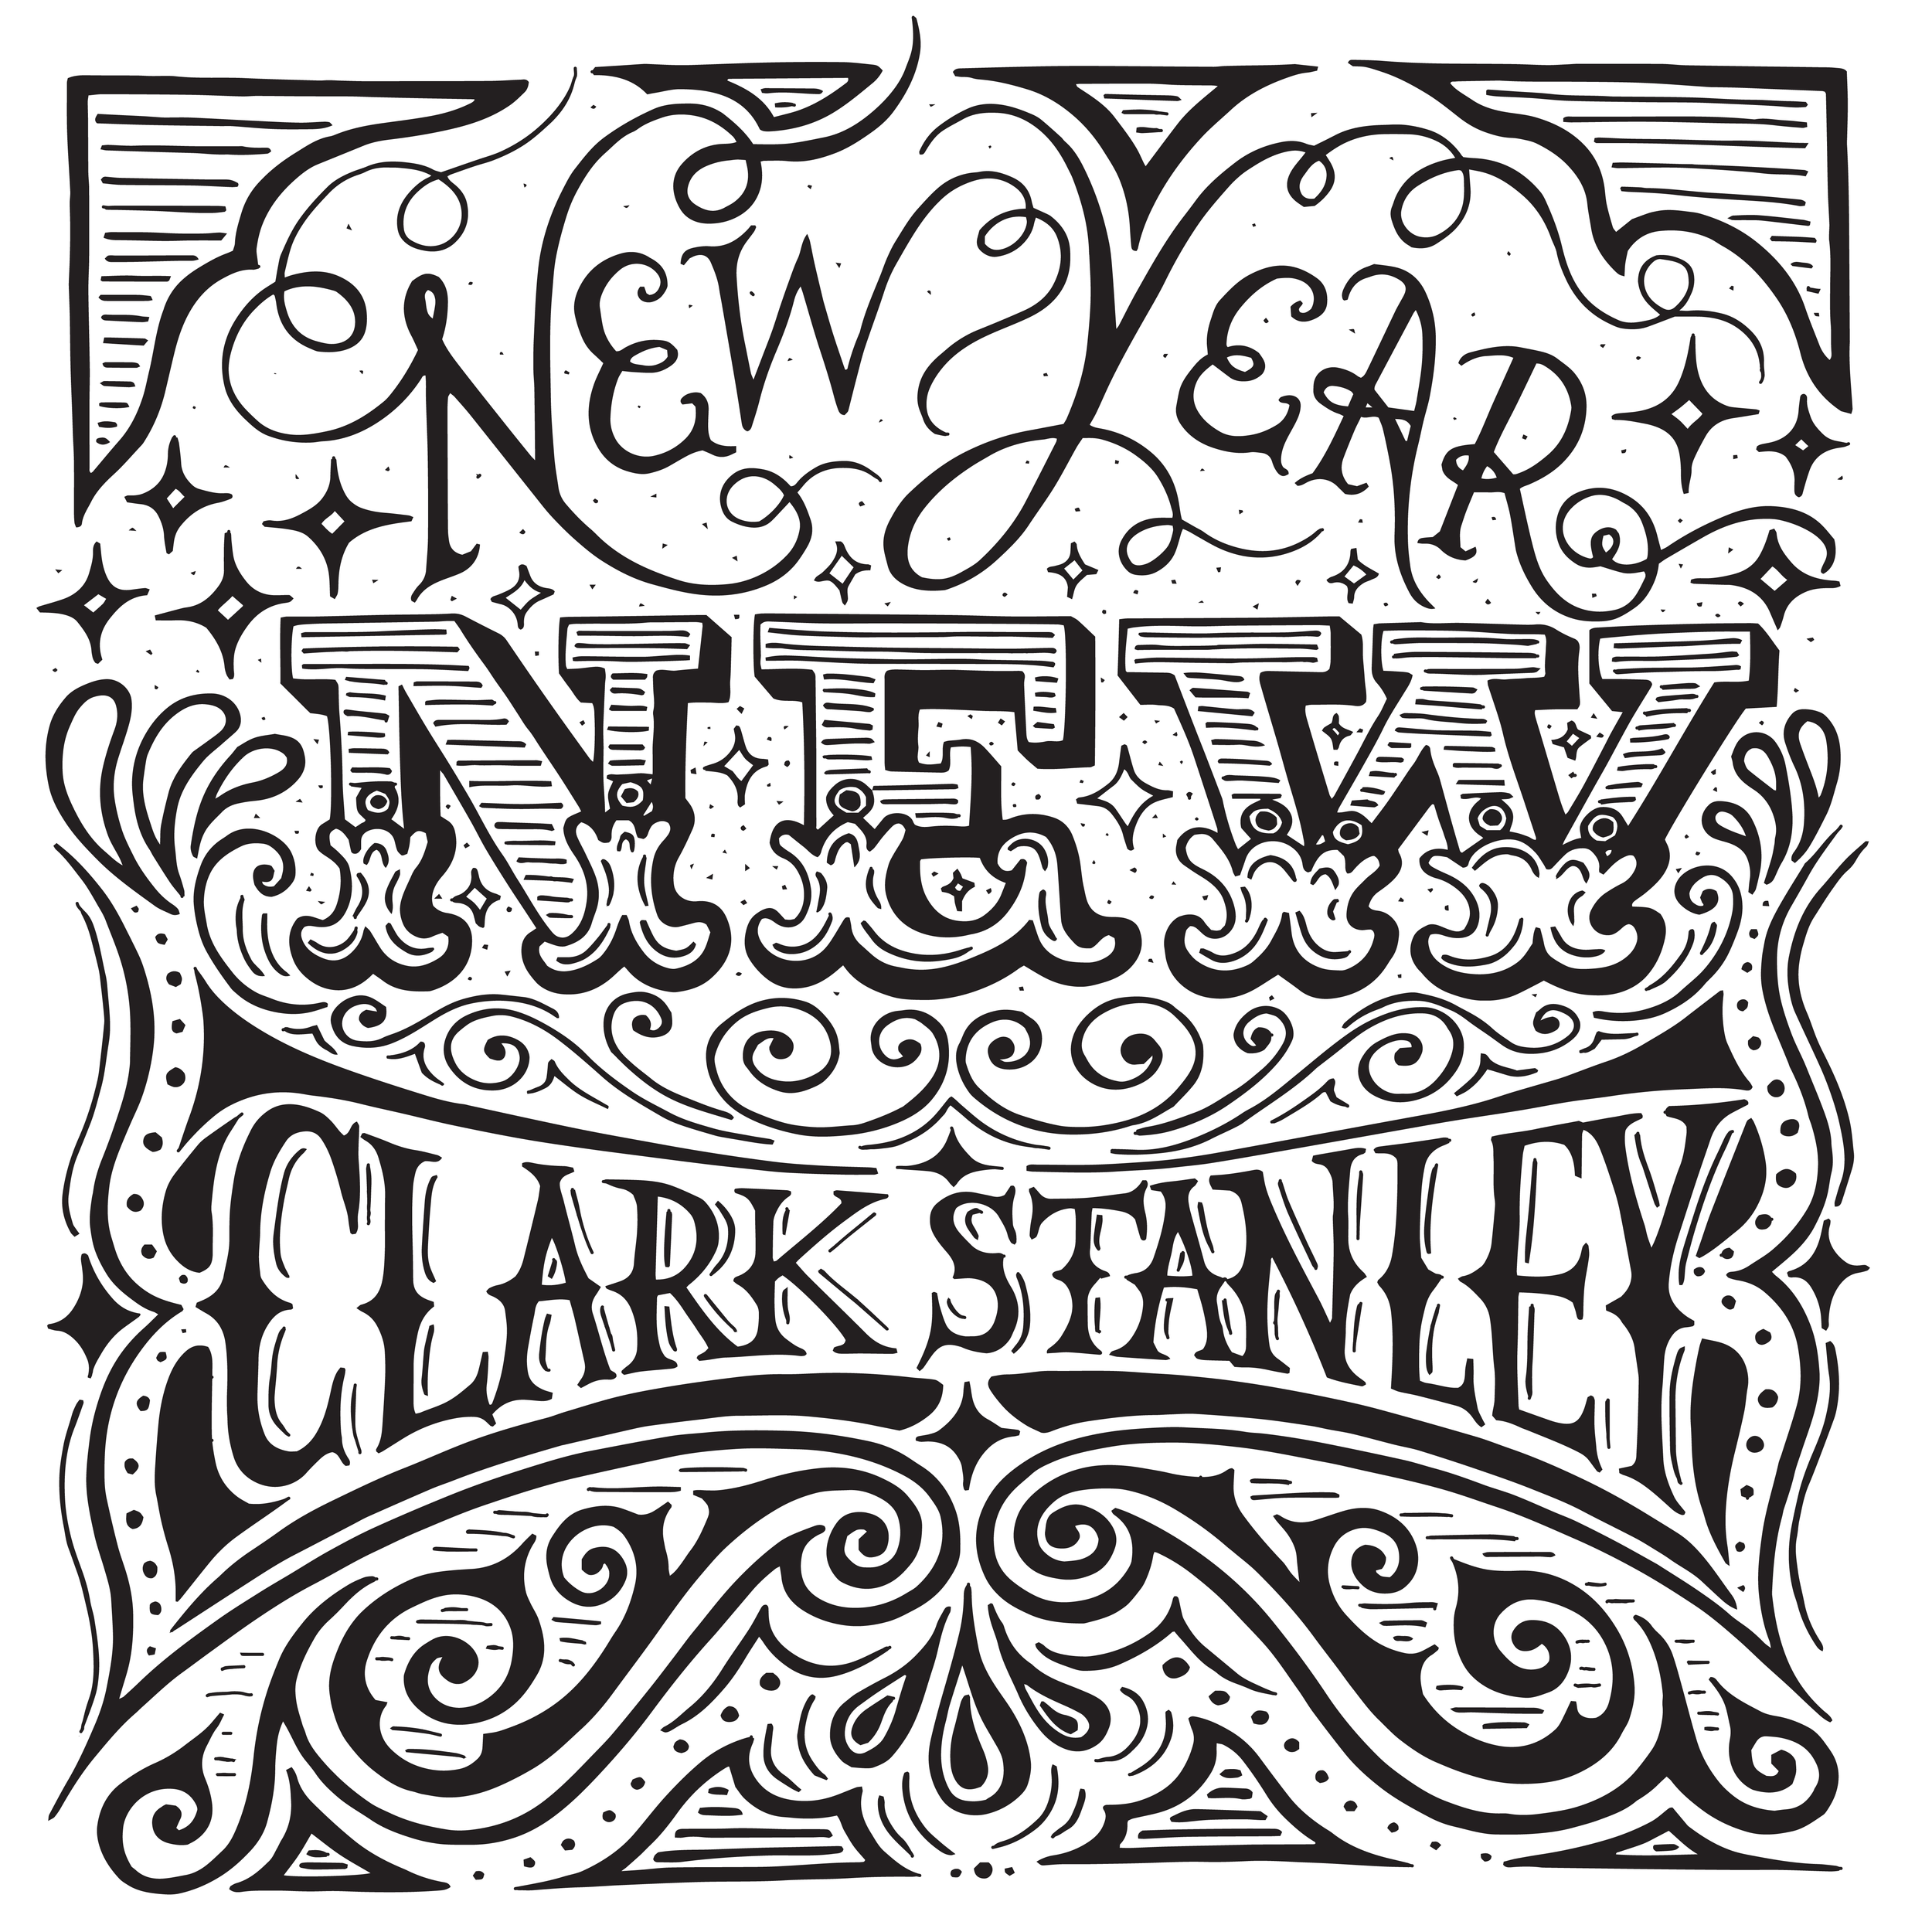 New Year- New Clark Stanley-01.png